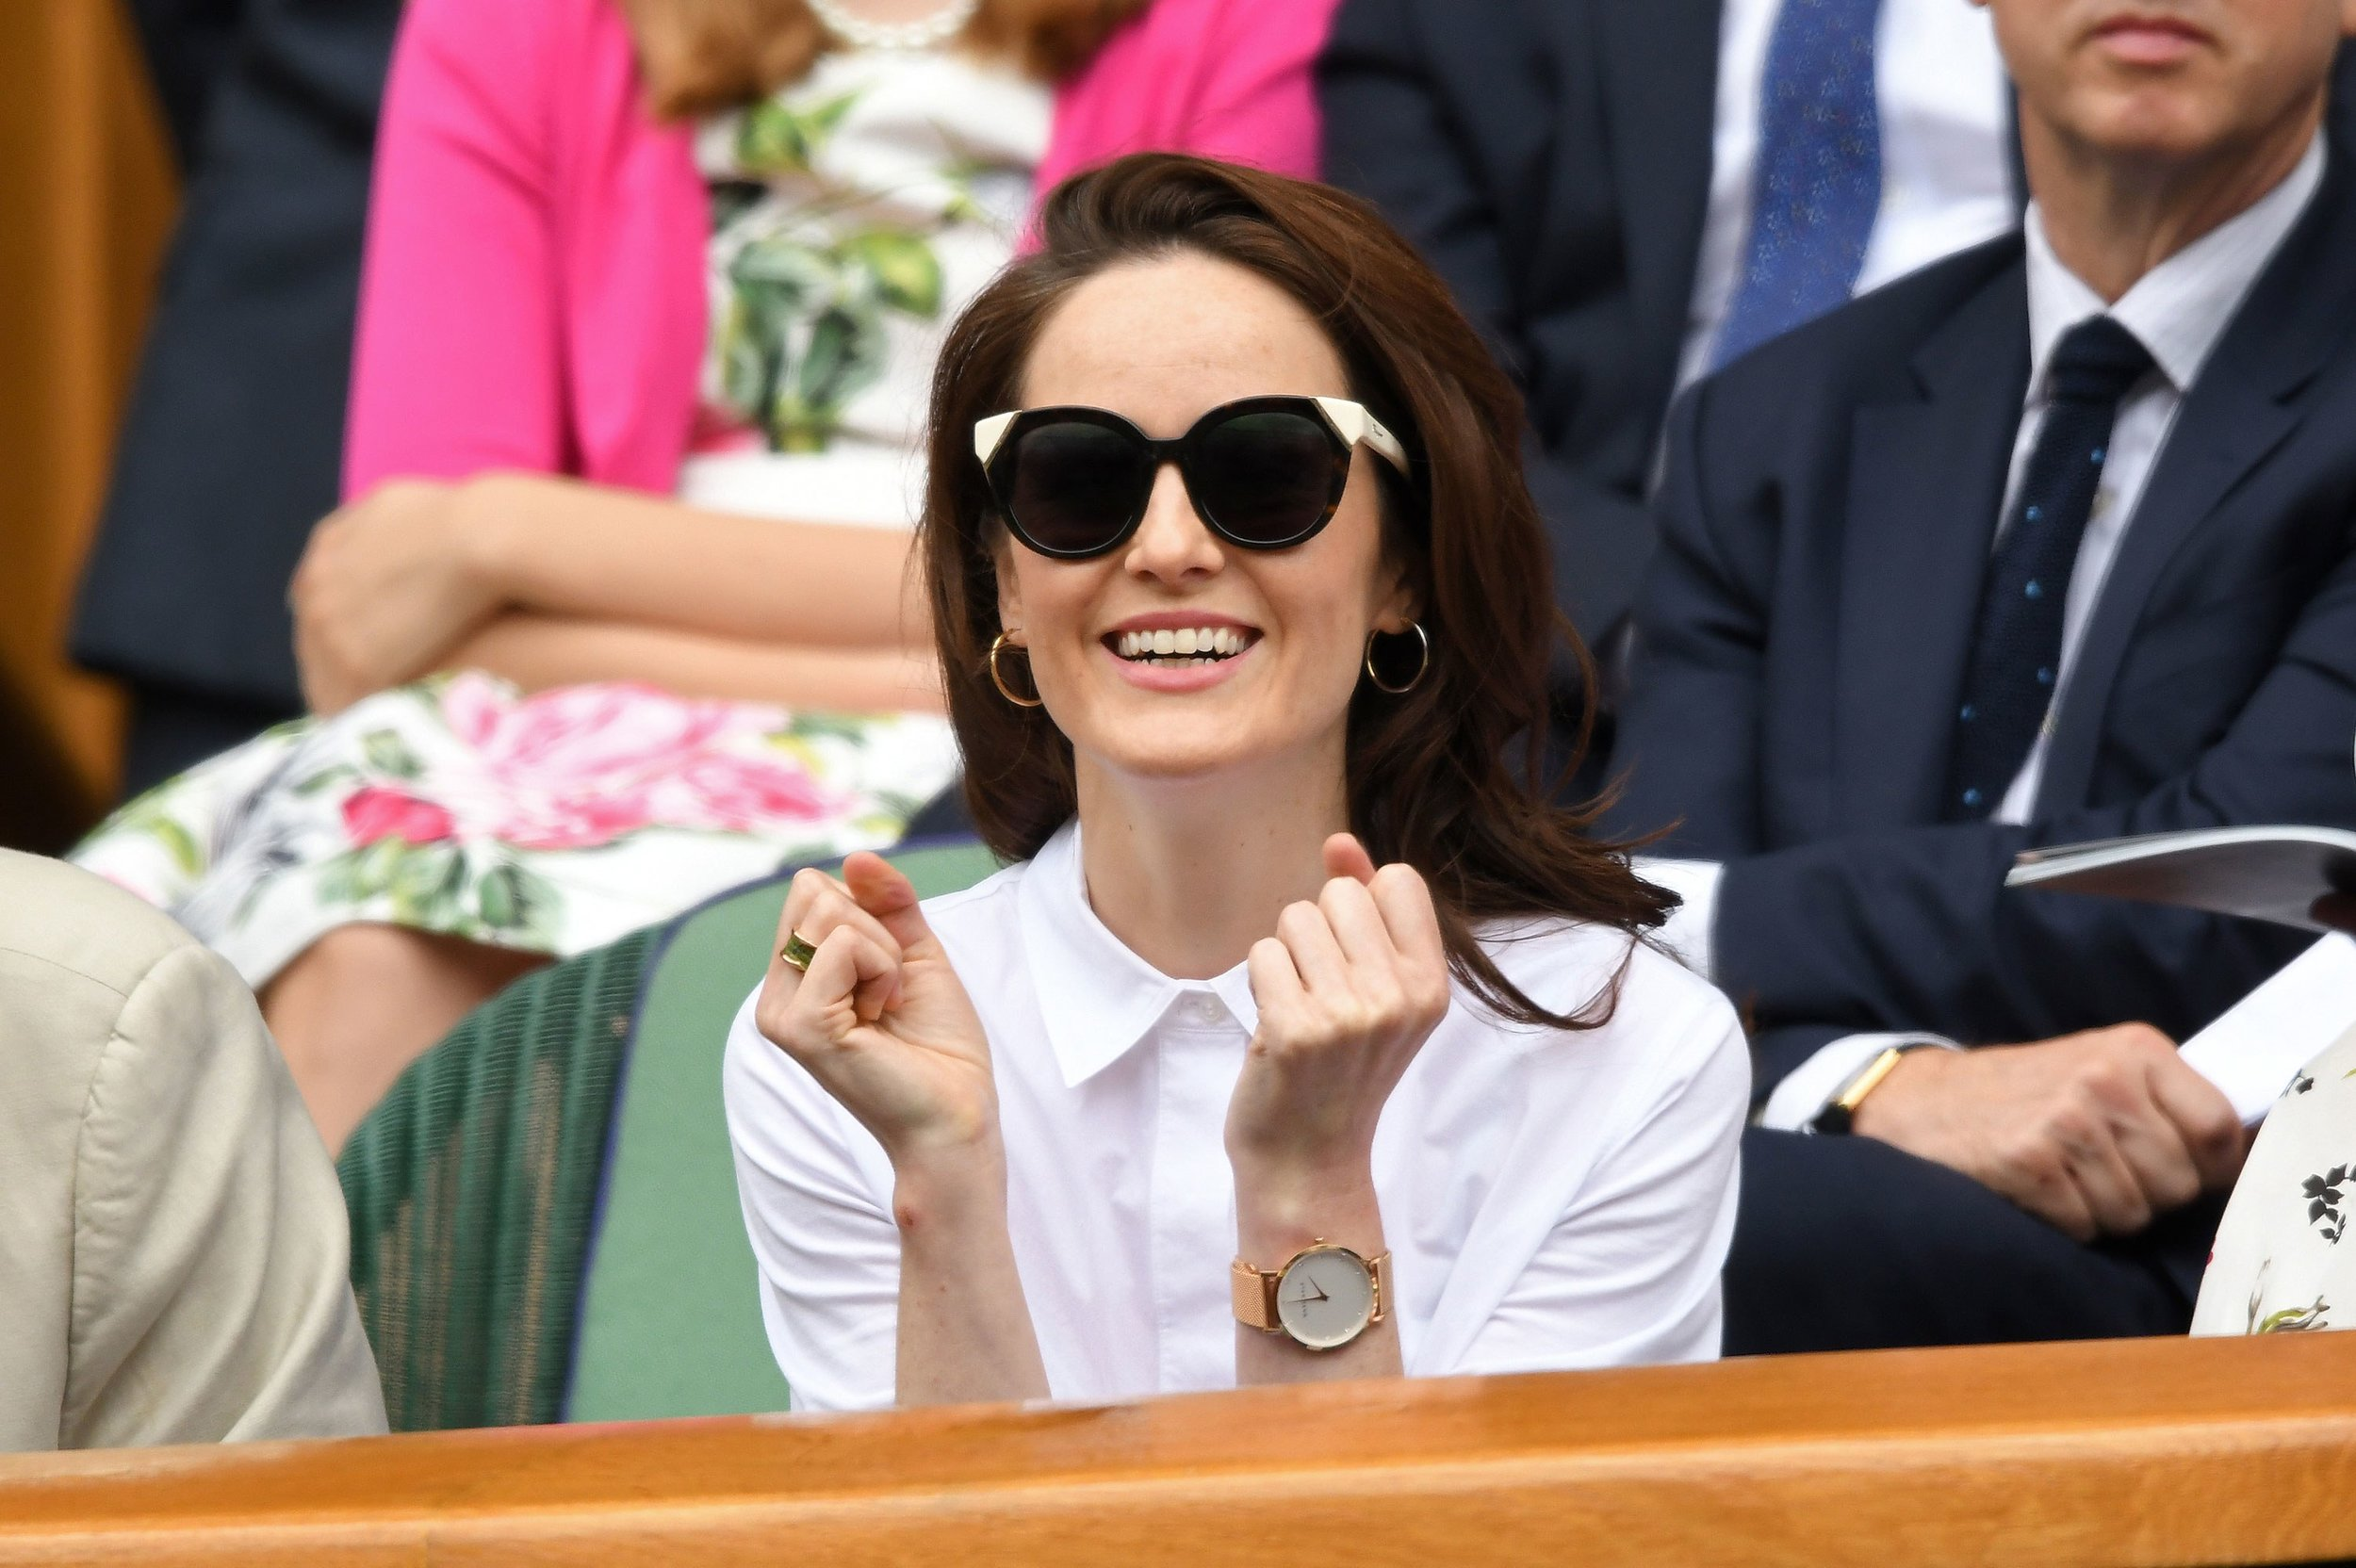 04-celebs-at-wimbledon-2018.jpg